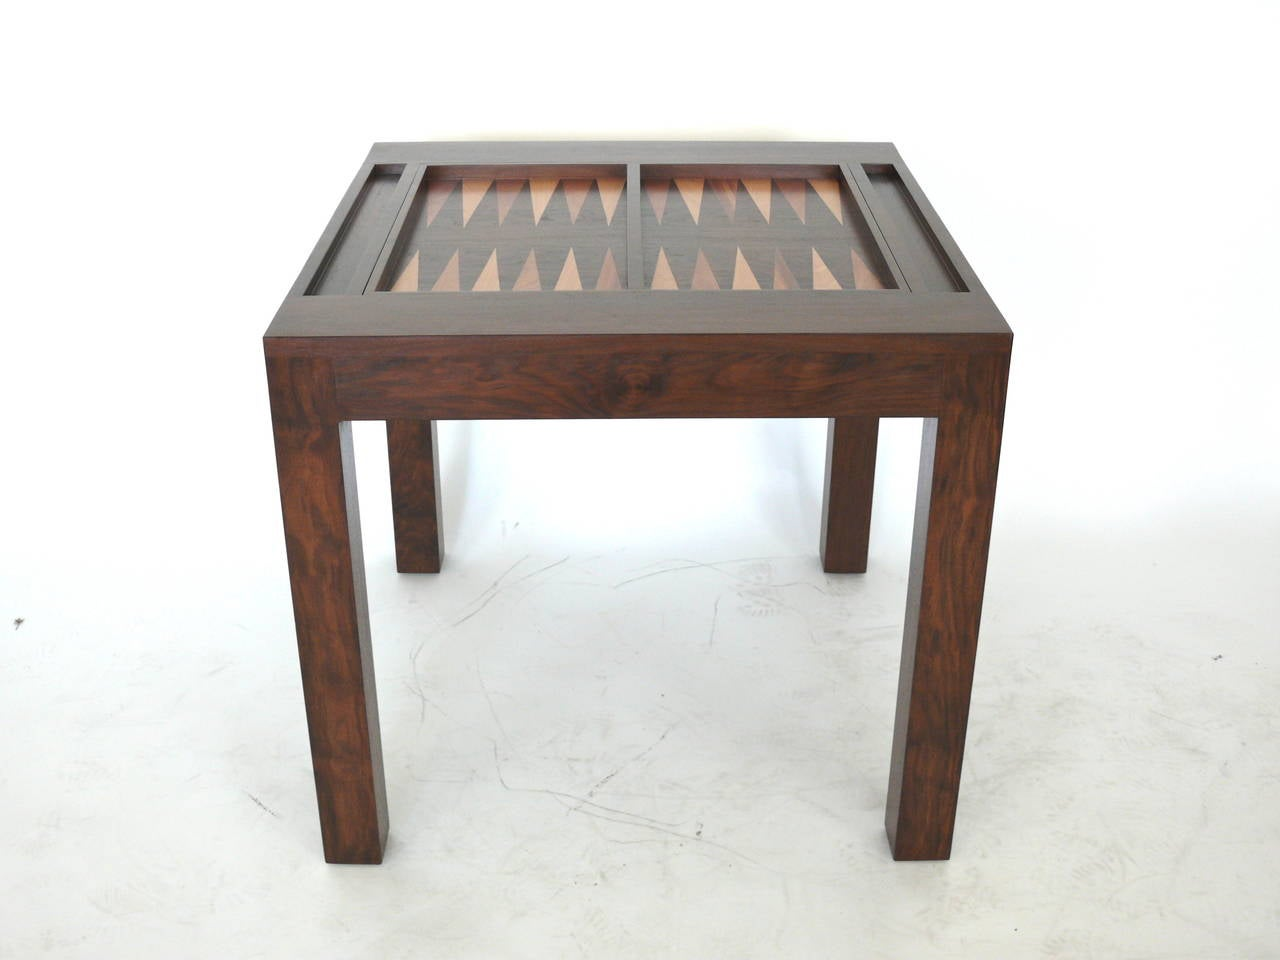 parson 39 s style backgammon table for sale at 1stdibs. Black Bedroom Furniture Sets. Home Design Ideas